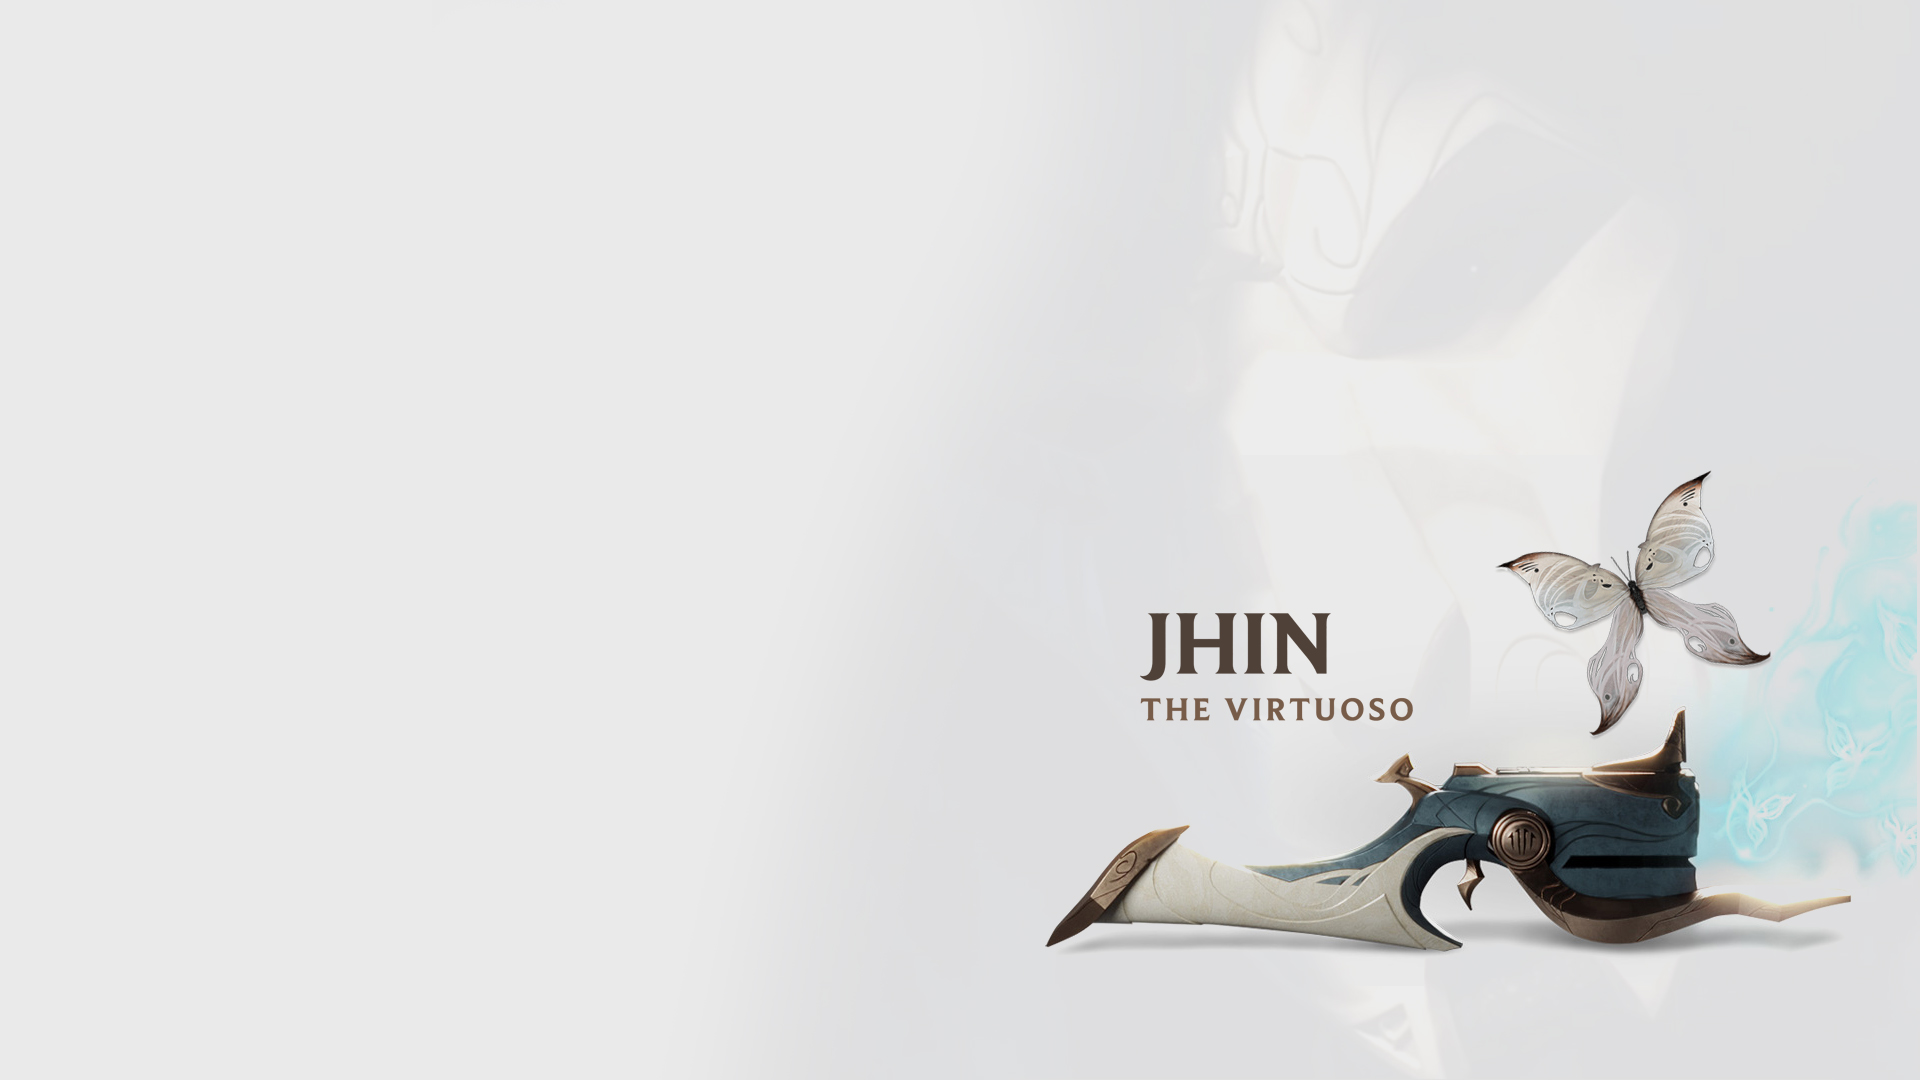 Sivir Wallpaper Quote Jhin The Virtuoso Lolwallpapers